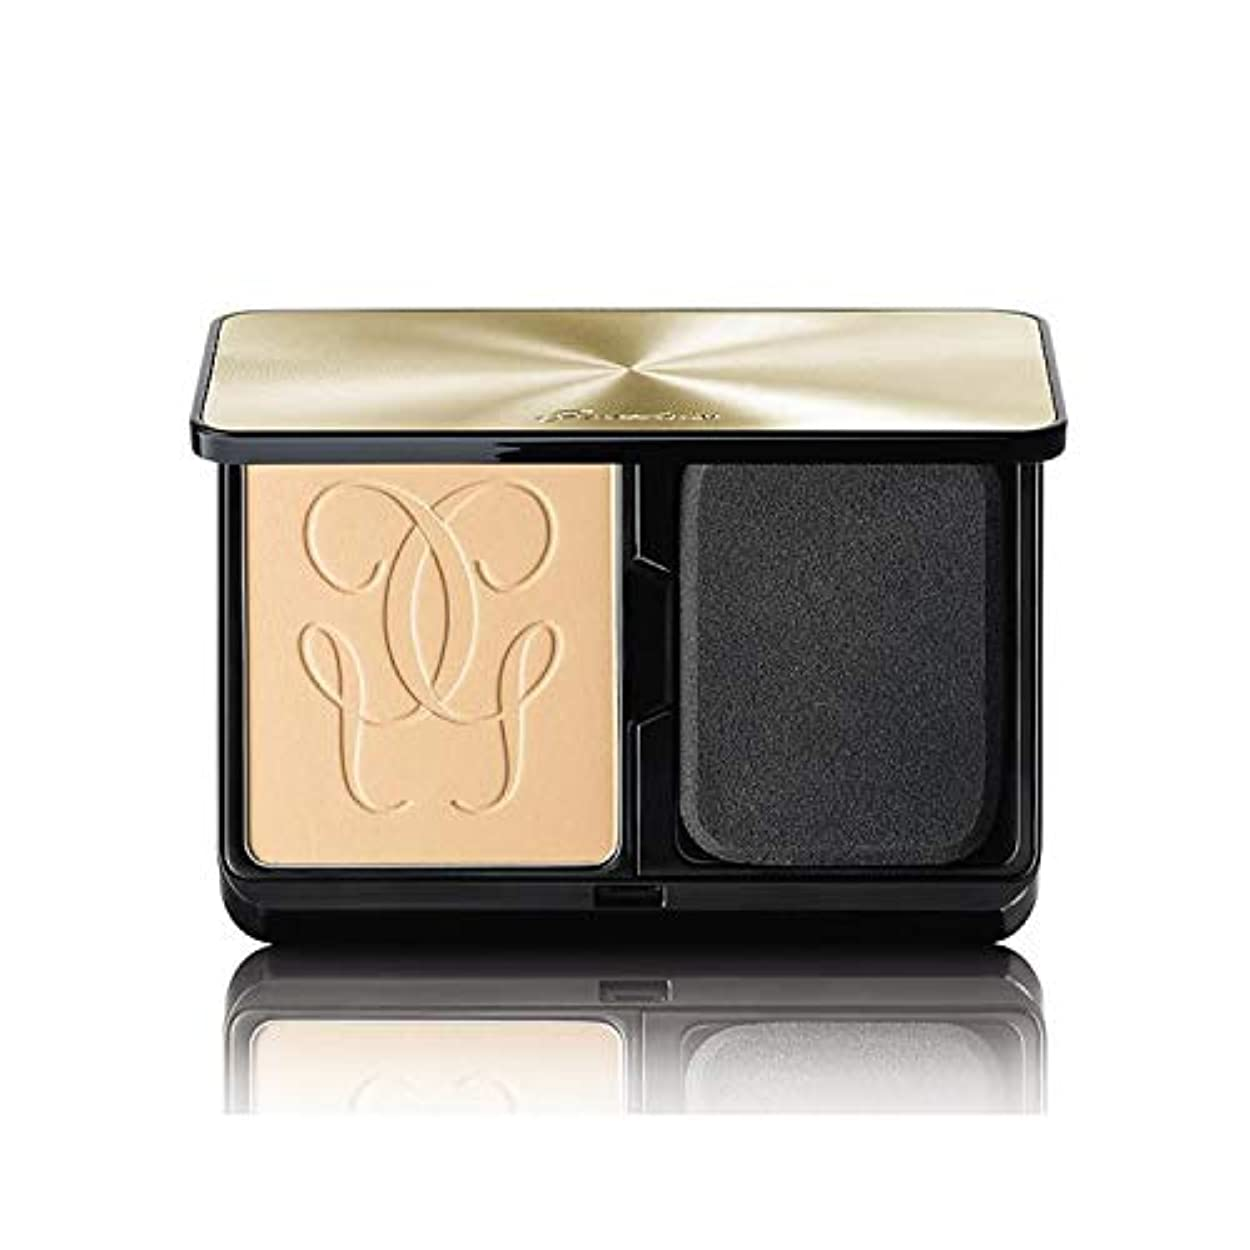 ゲラン Lingerie De Peau Mat Alive Buildable Compact Powder Foundation SPF 15 - # 01N Very Light 8.5g/0.29oz並行輸入品